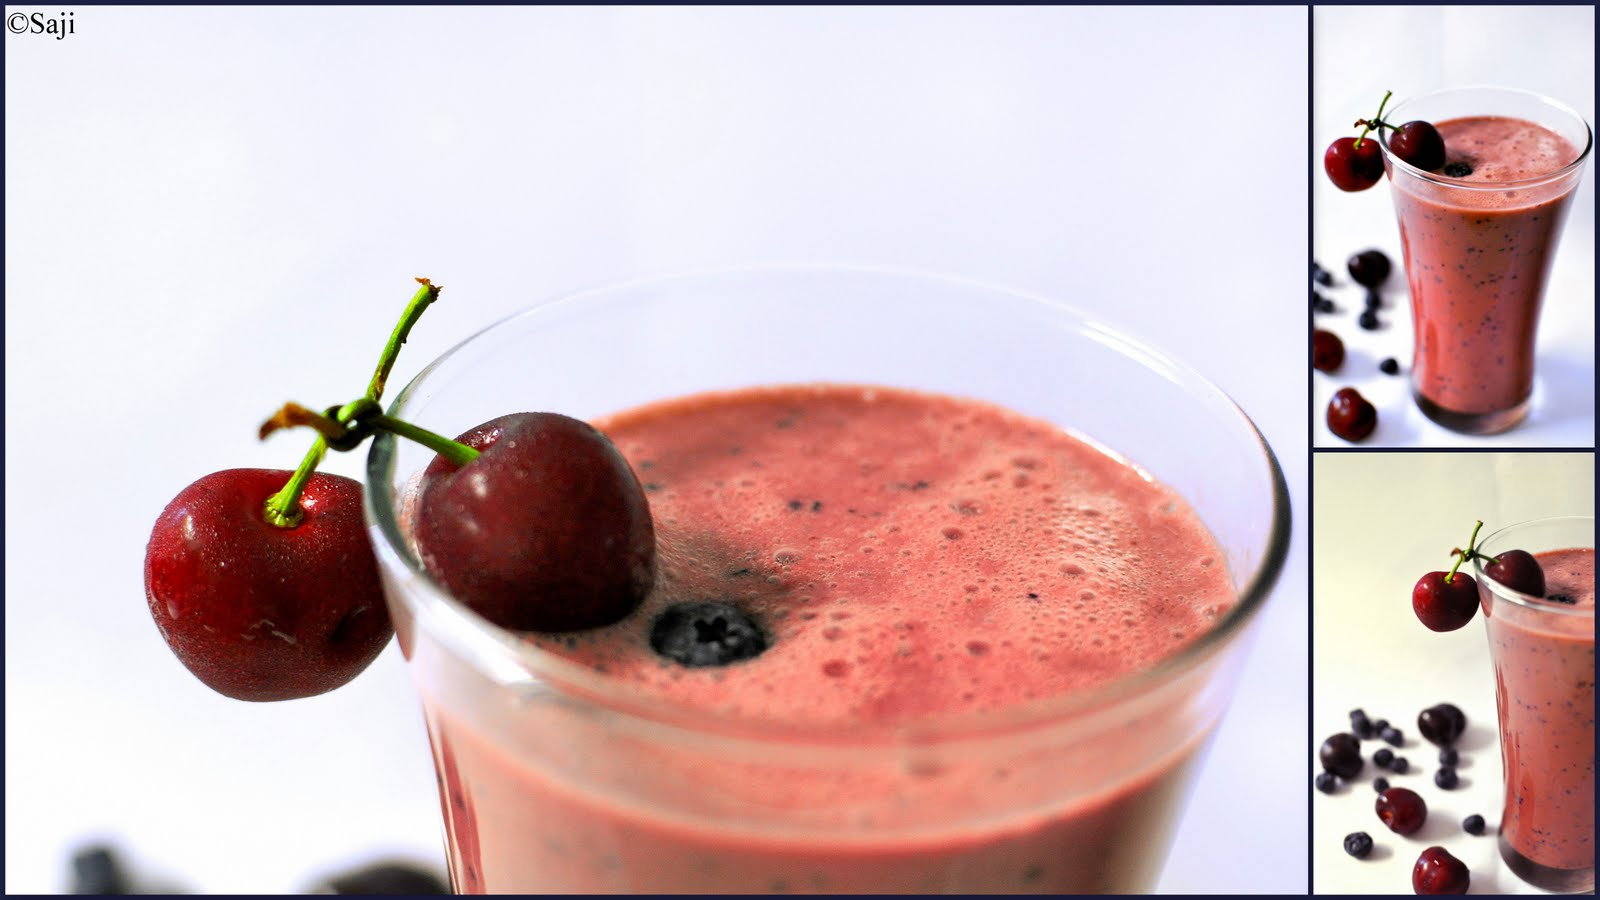 Saji: Cherry Berry Smoothie